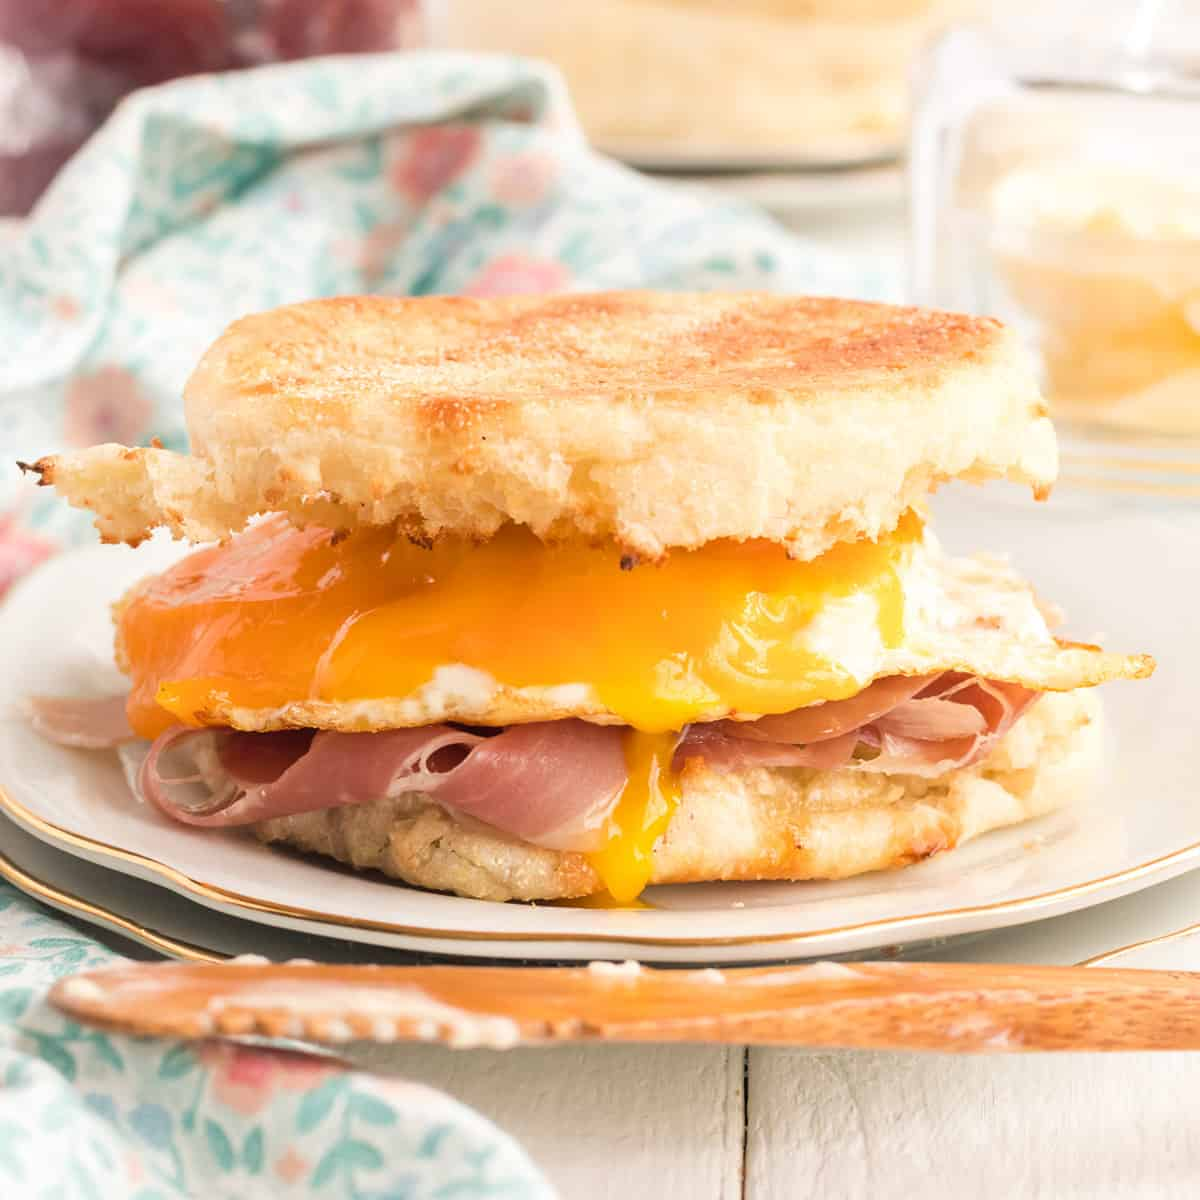 A breakfast sandwich made with egg, ham and cheese on a toasted English muffin.